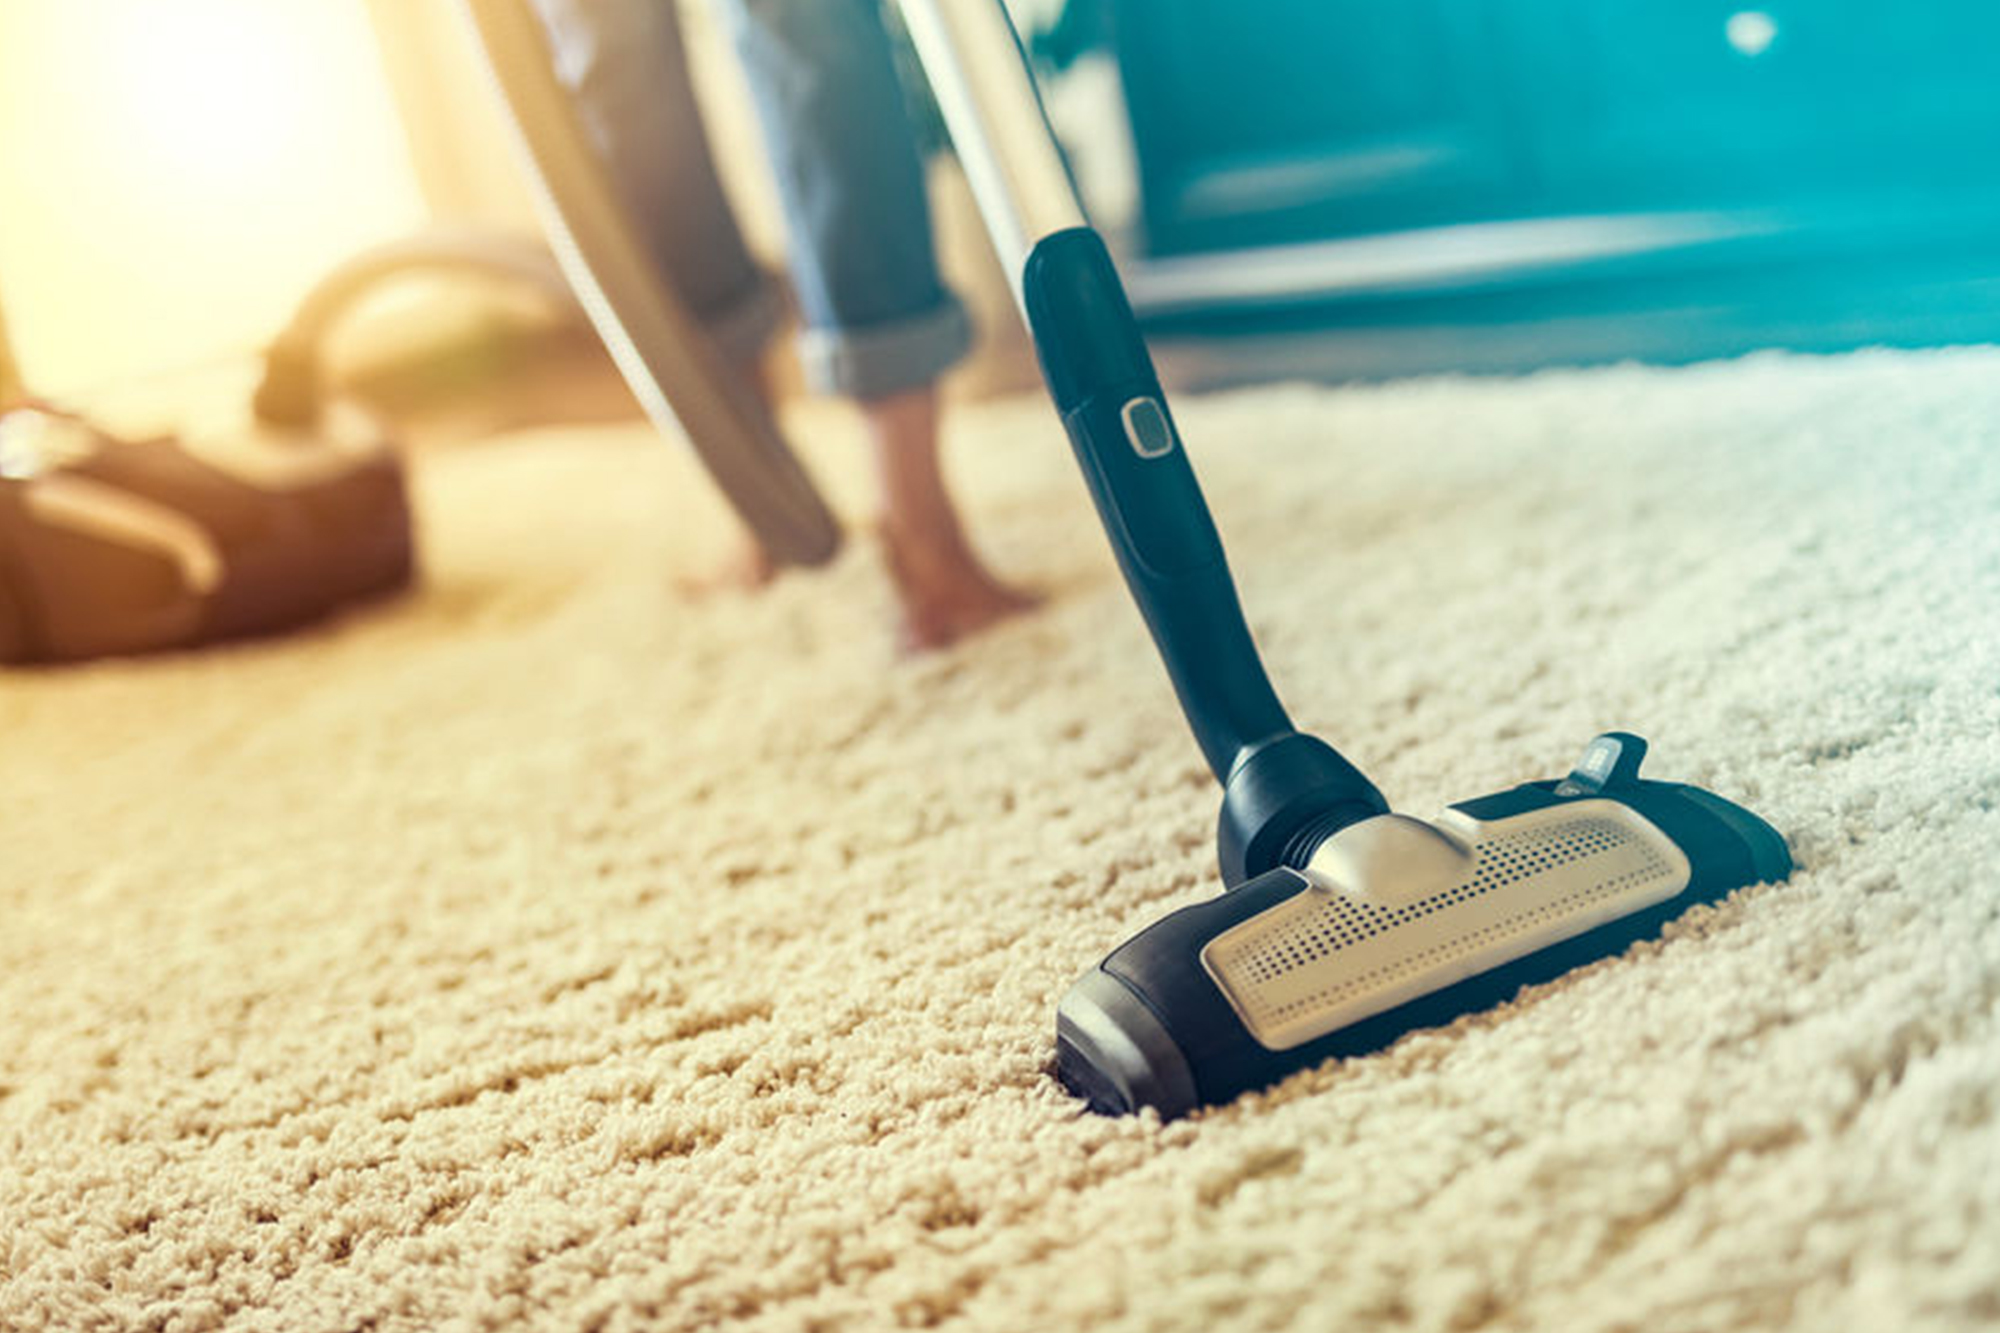 Carpet Cleaning Service in Montreal